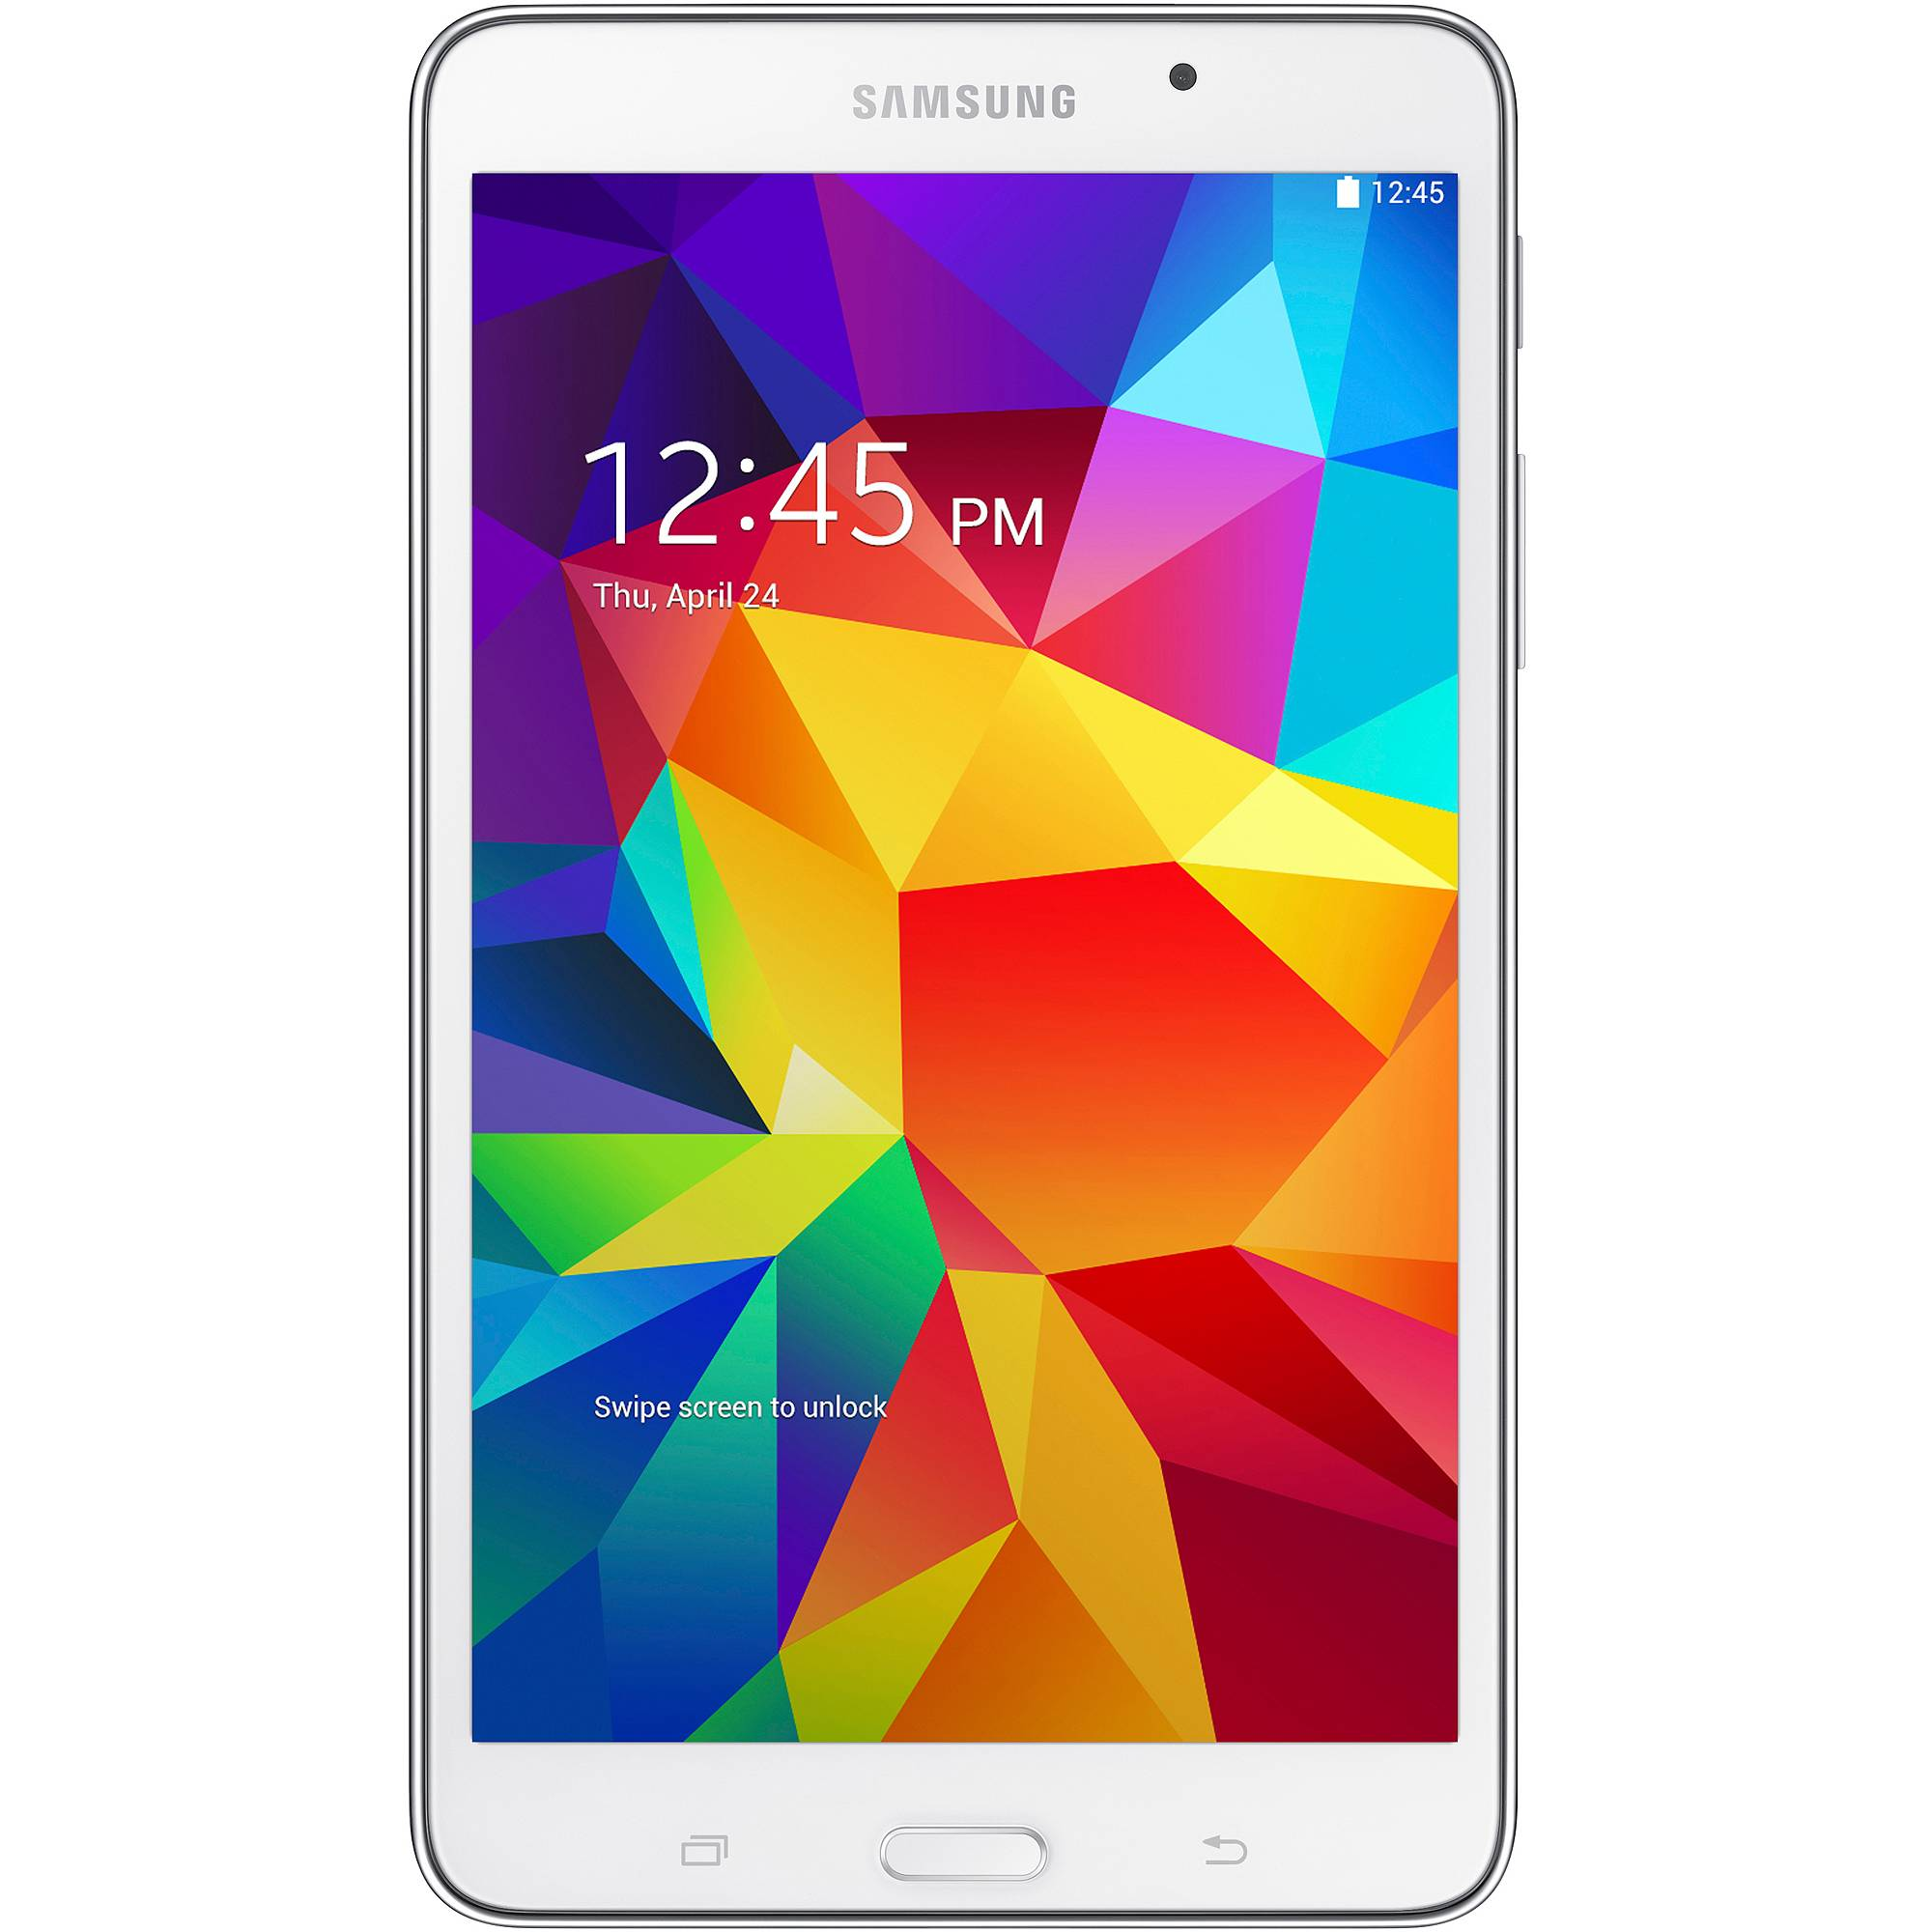 "SAMSUNG Galaxy Tab 4-7.0"" 8GB Android Tablet -Wi-Fi (Model# SM-T230NZWAXAR)"